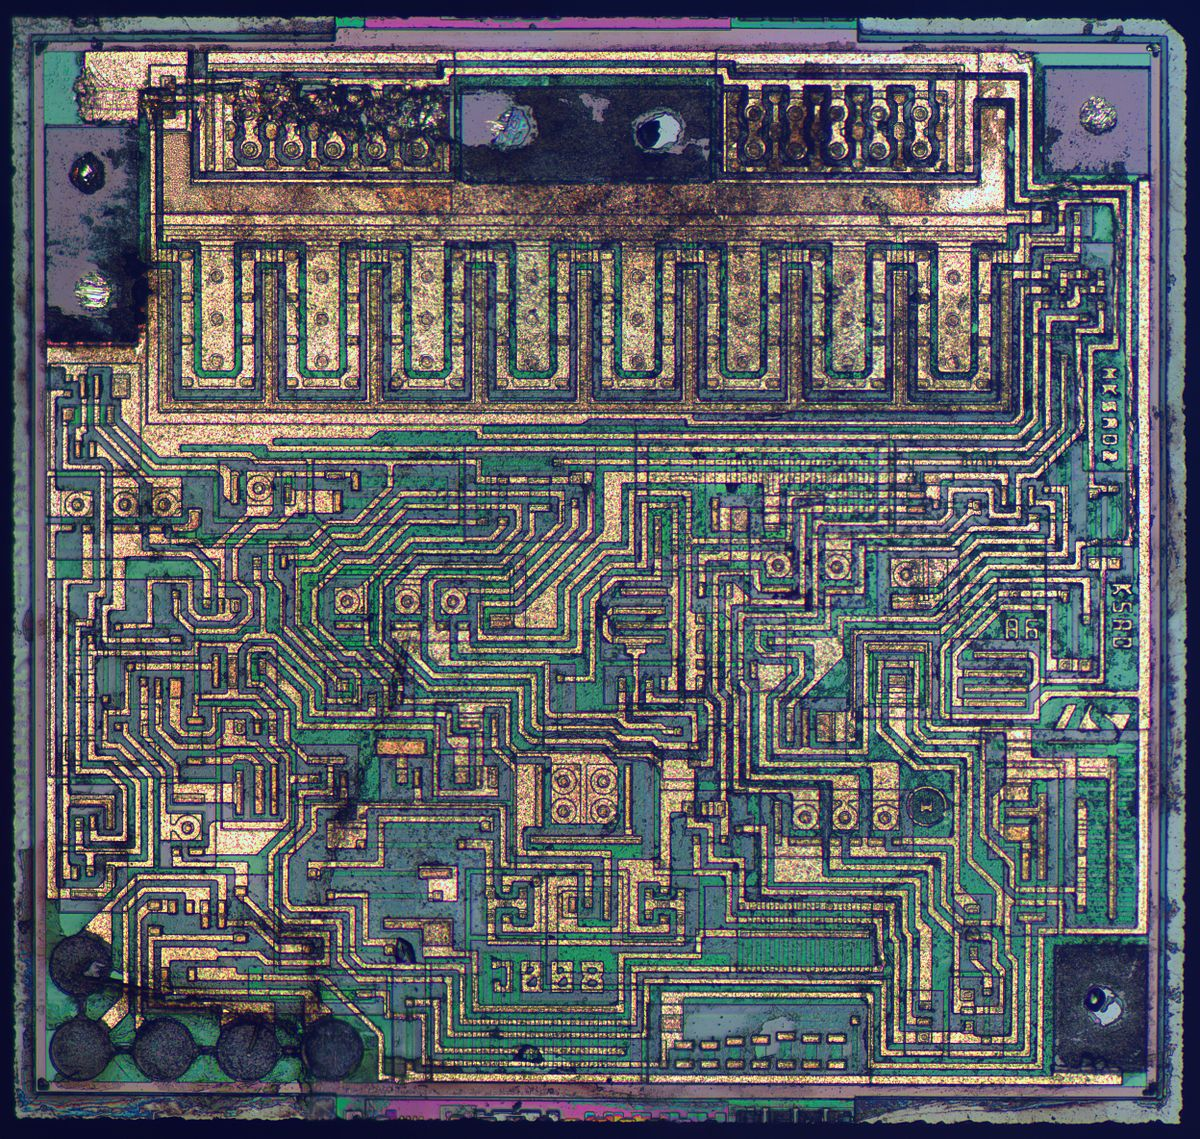 Low Dropout Regulator Wikipedia The Circuit Board Showing Calculator Integrated Just